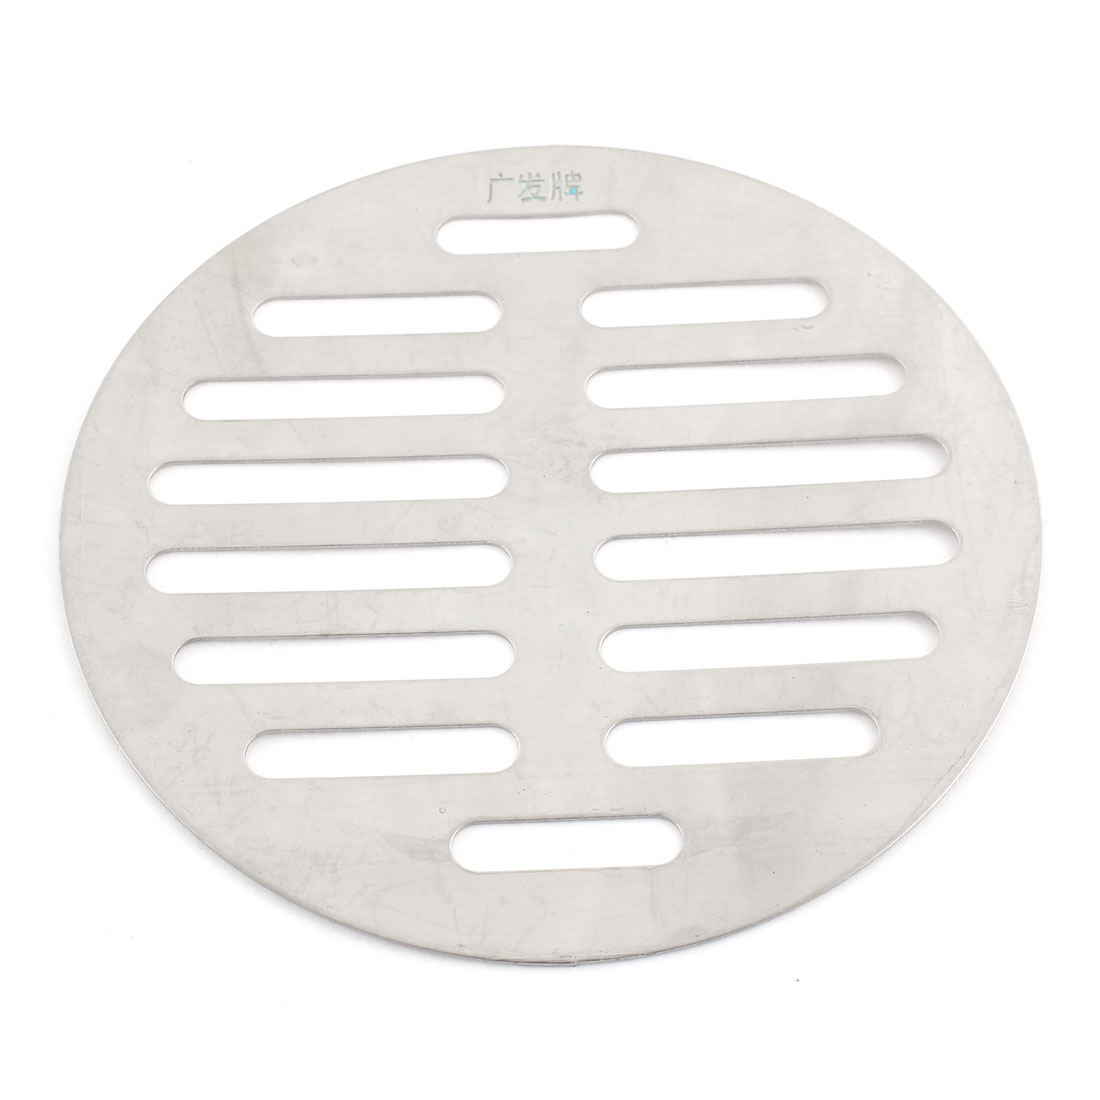 4.4 Inch Stainless Steel Home Kitchen Floor Strainer Drain Cover Gray